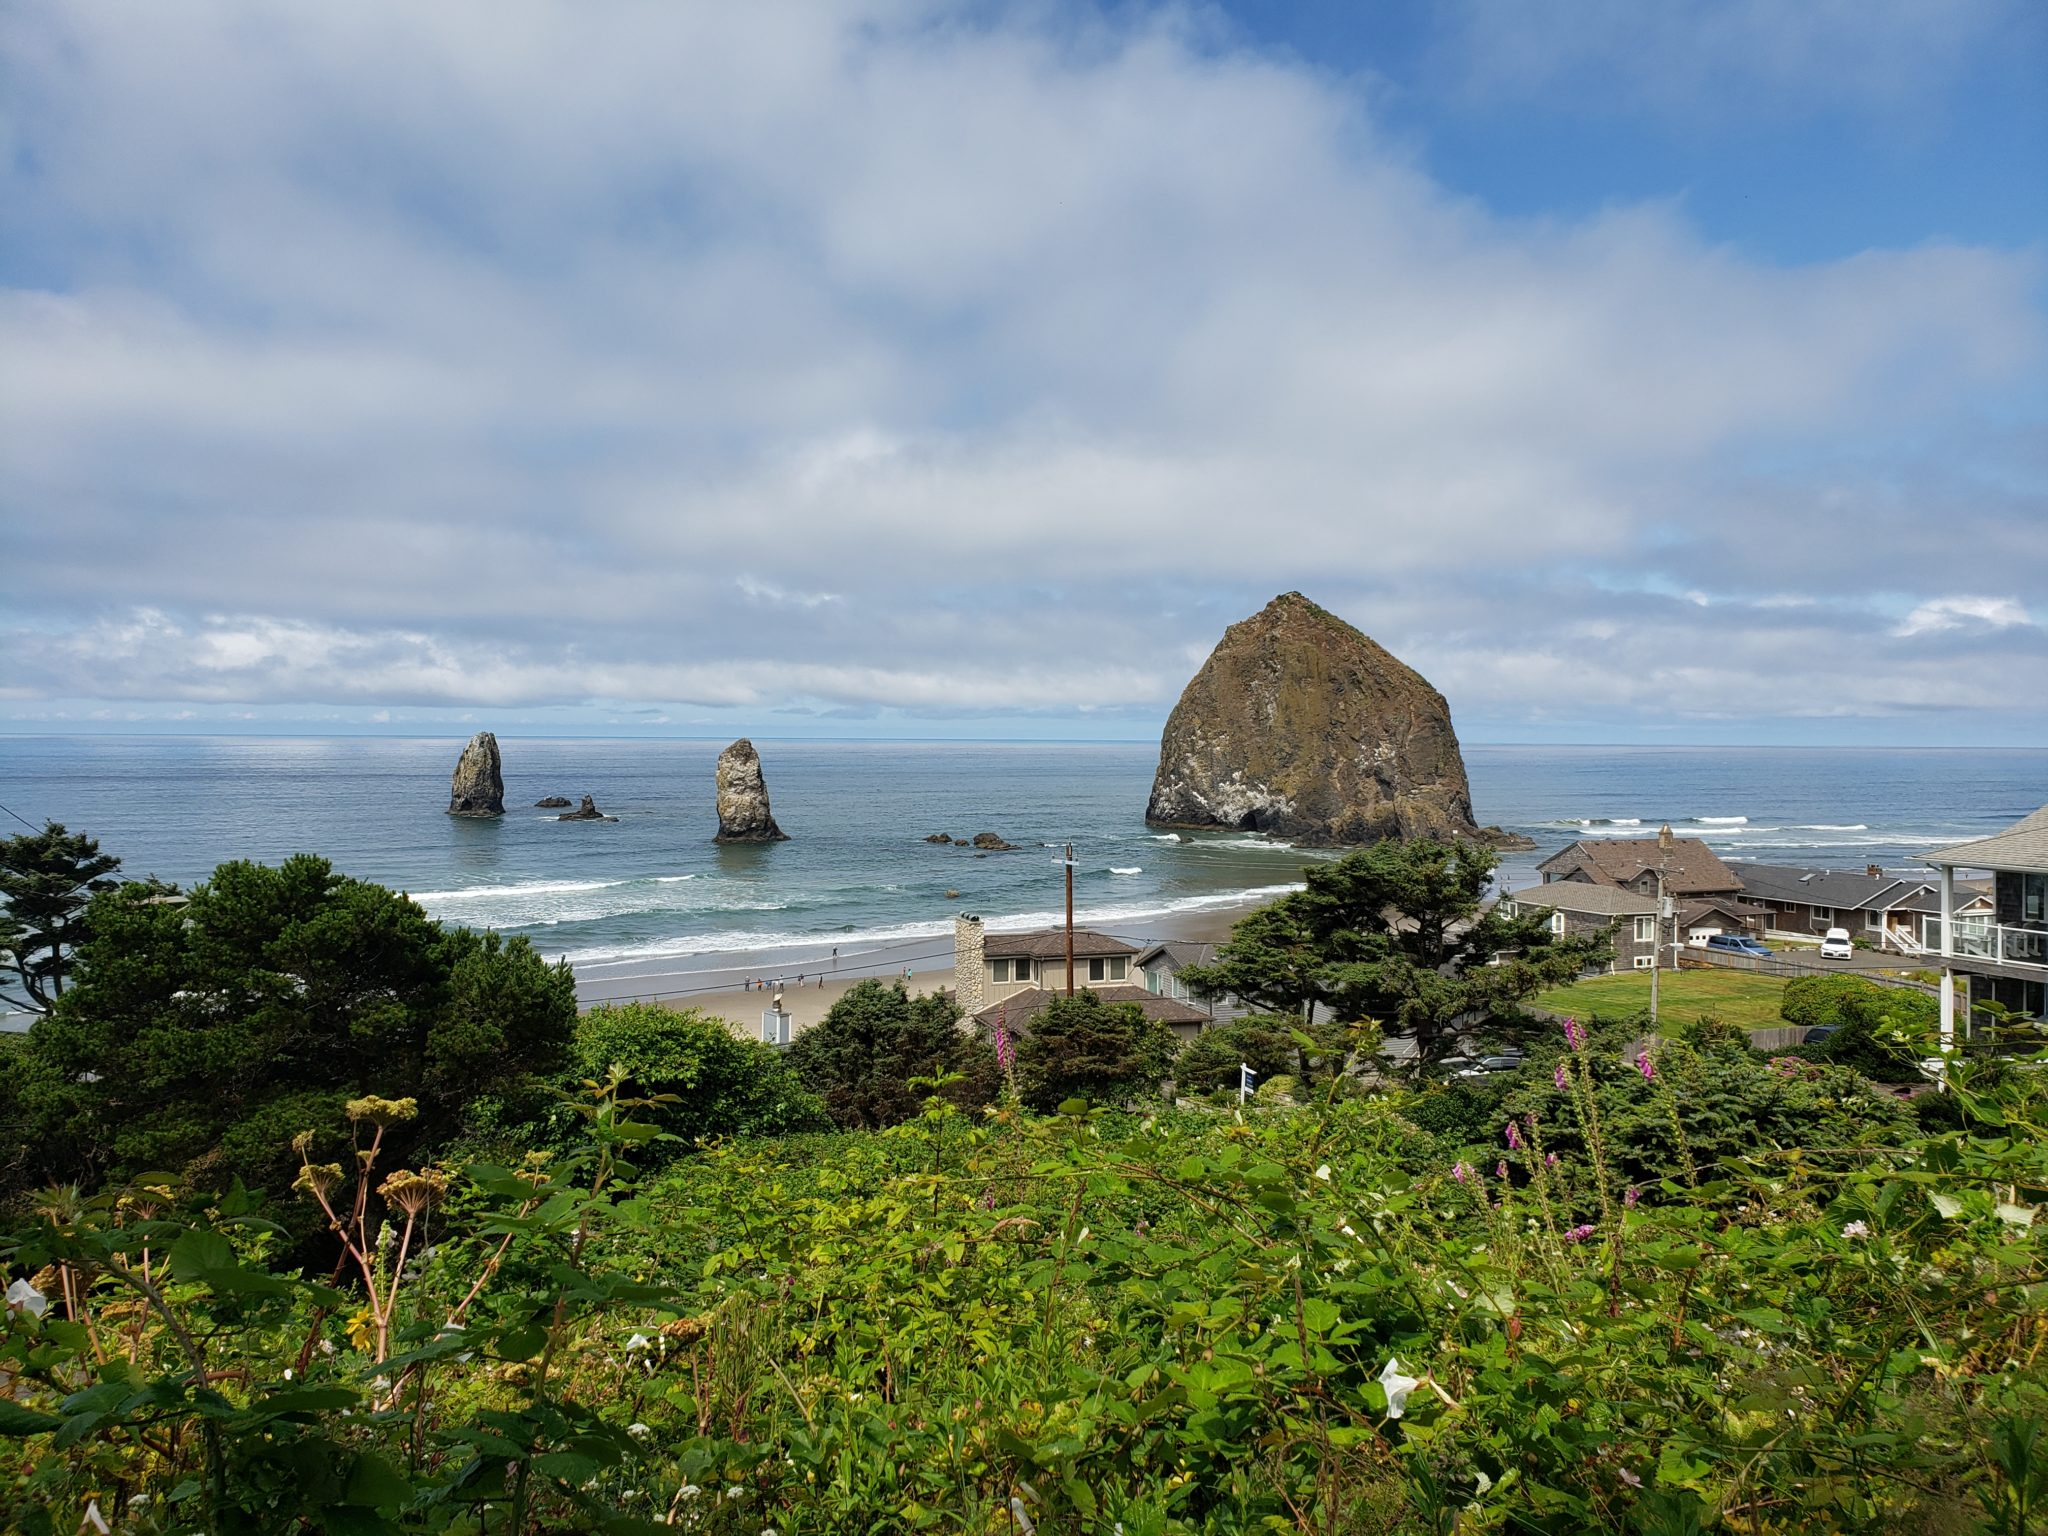 photograph of cannon beach by employee of Kin HR software